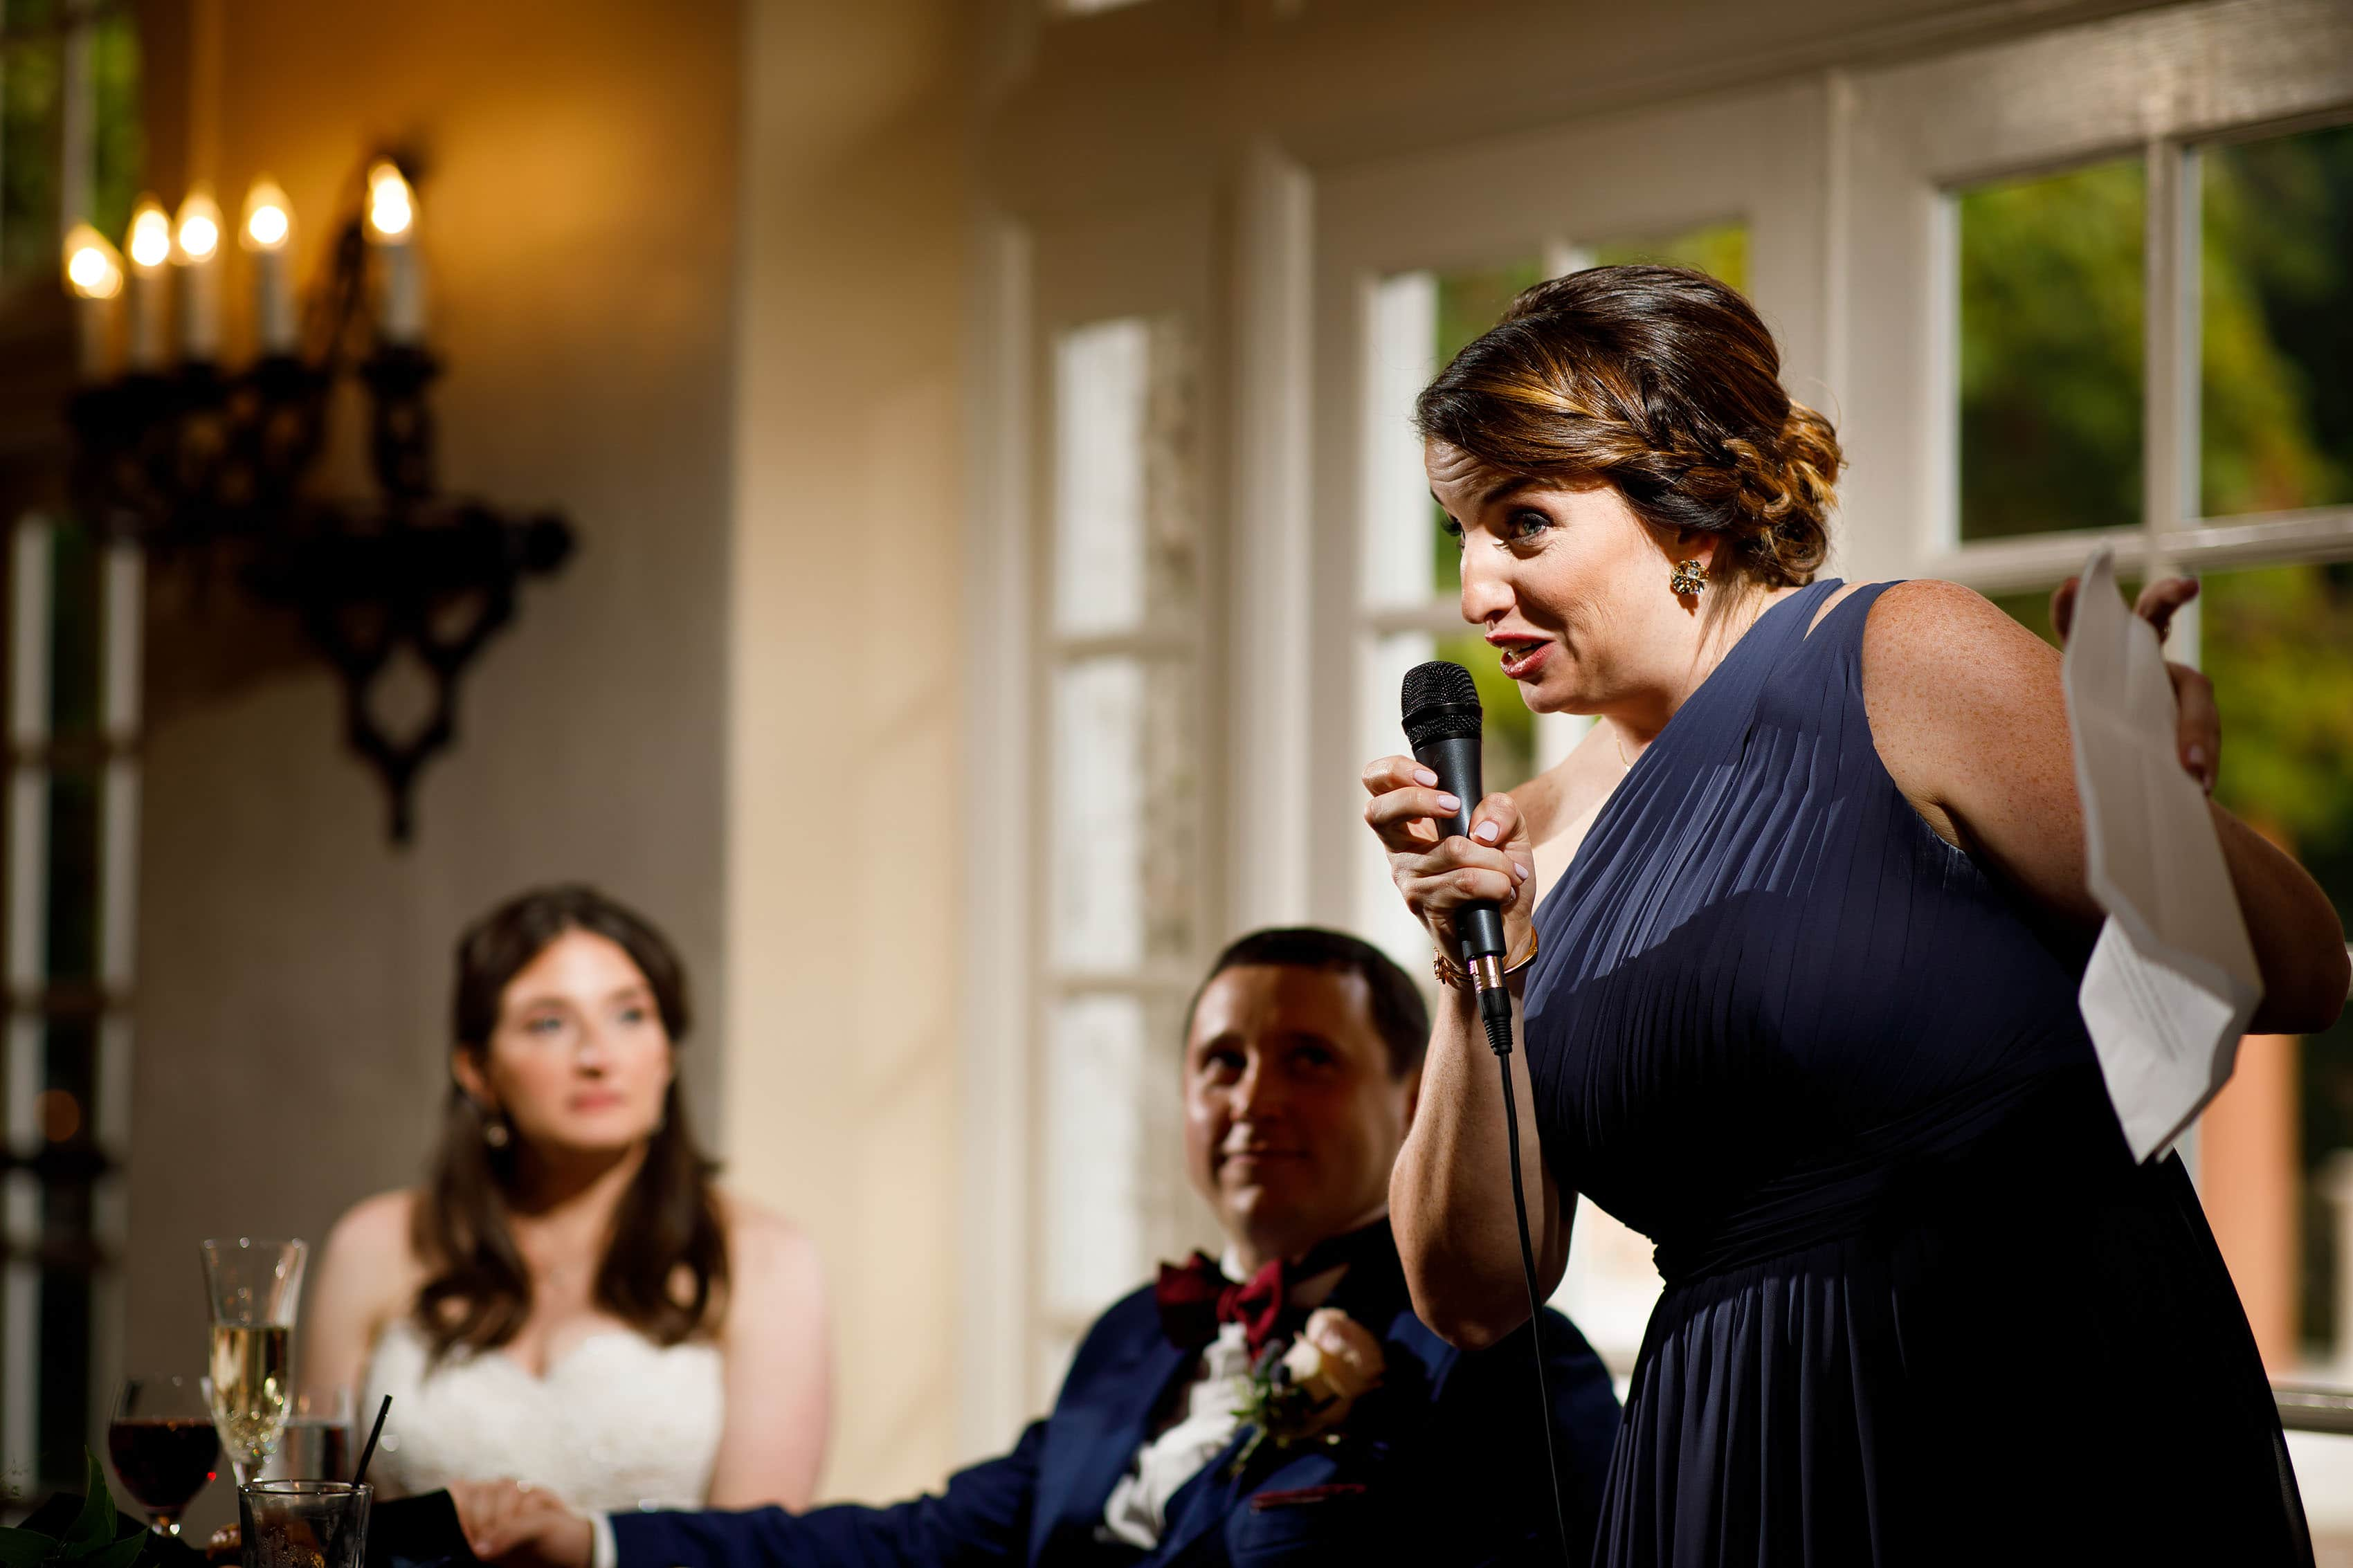 The brides sister gives a toast